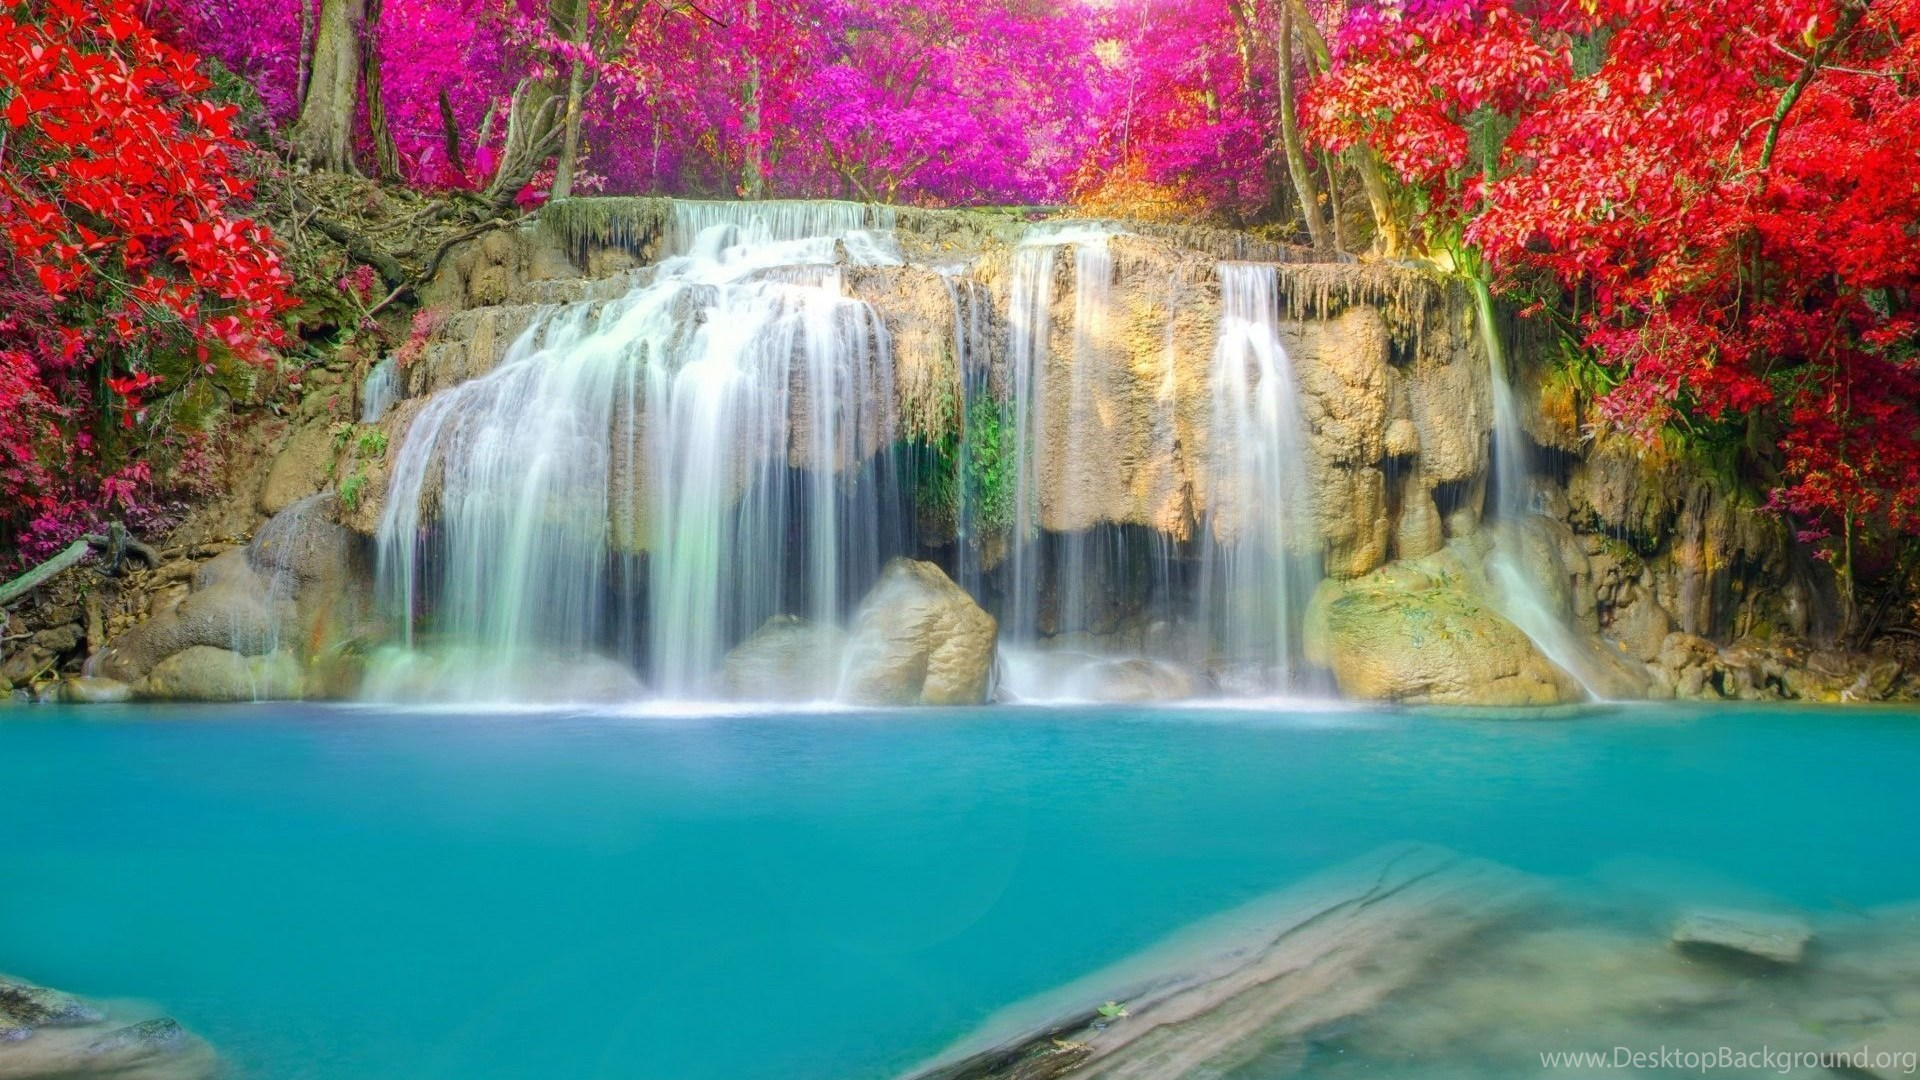 waterfall wallpapers hd high resolution free download desktop background